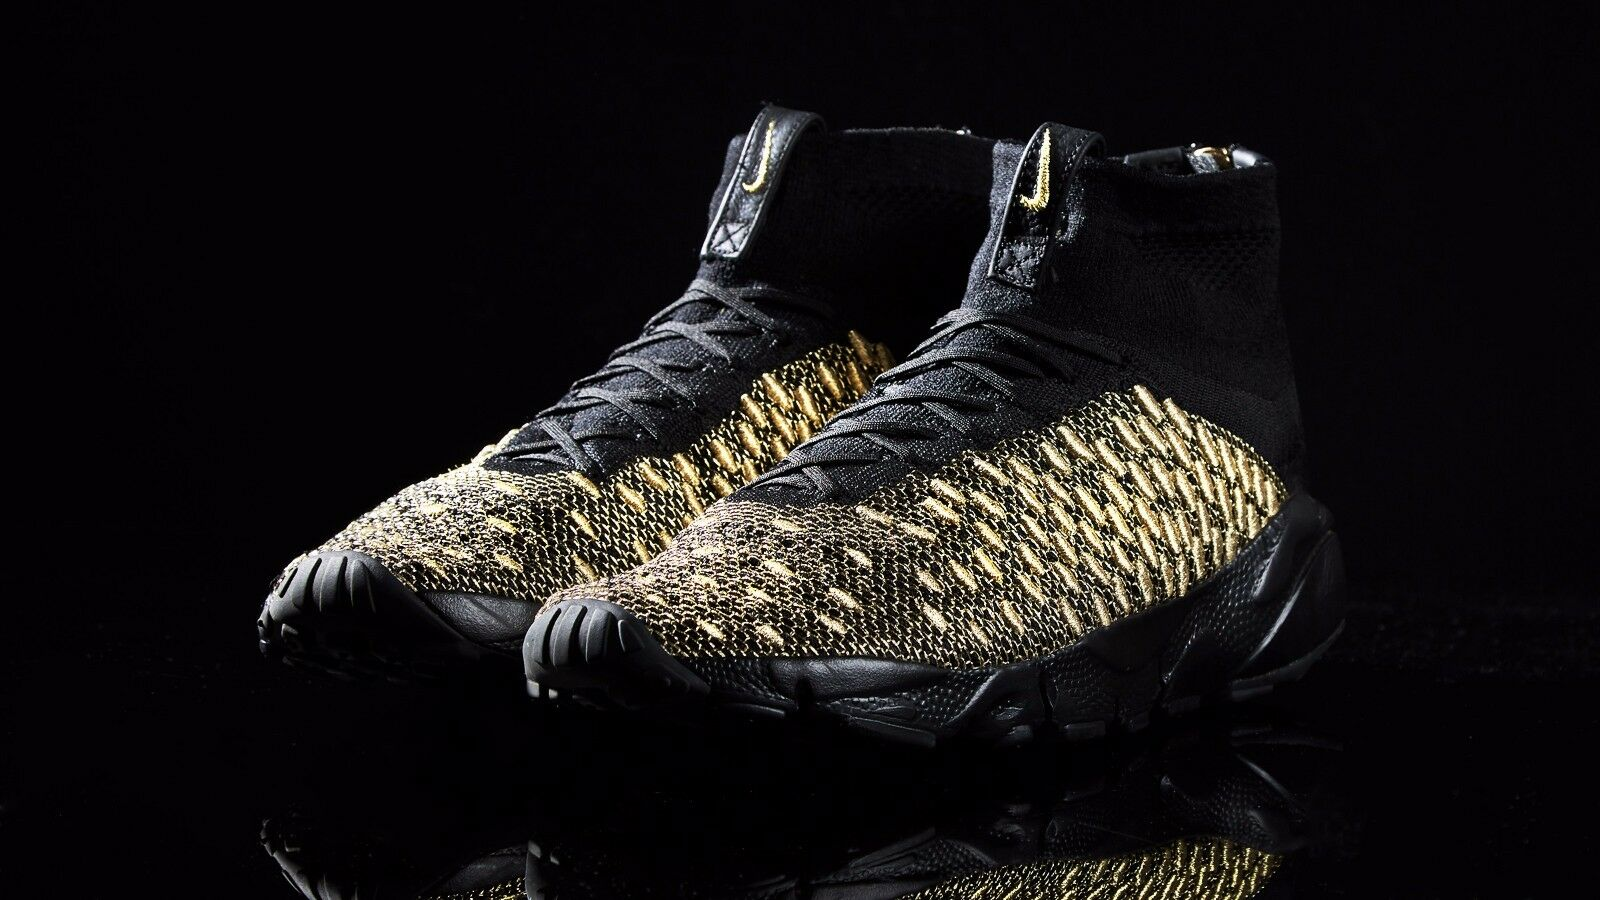 Hombres Footscape Magista QS rousting Lion Nike Air Lab Olivier rousting QS 834905007 802125